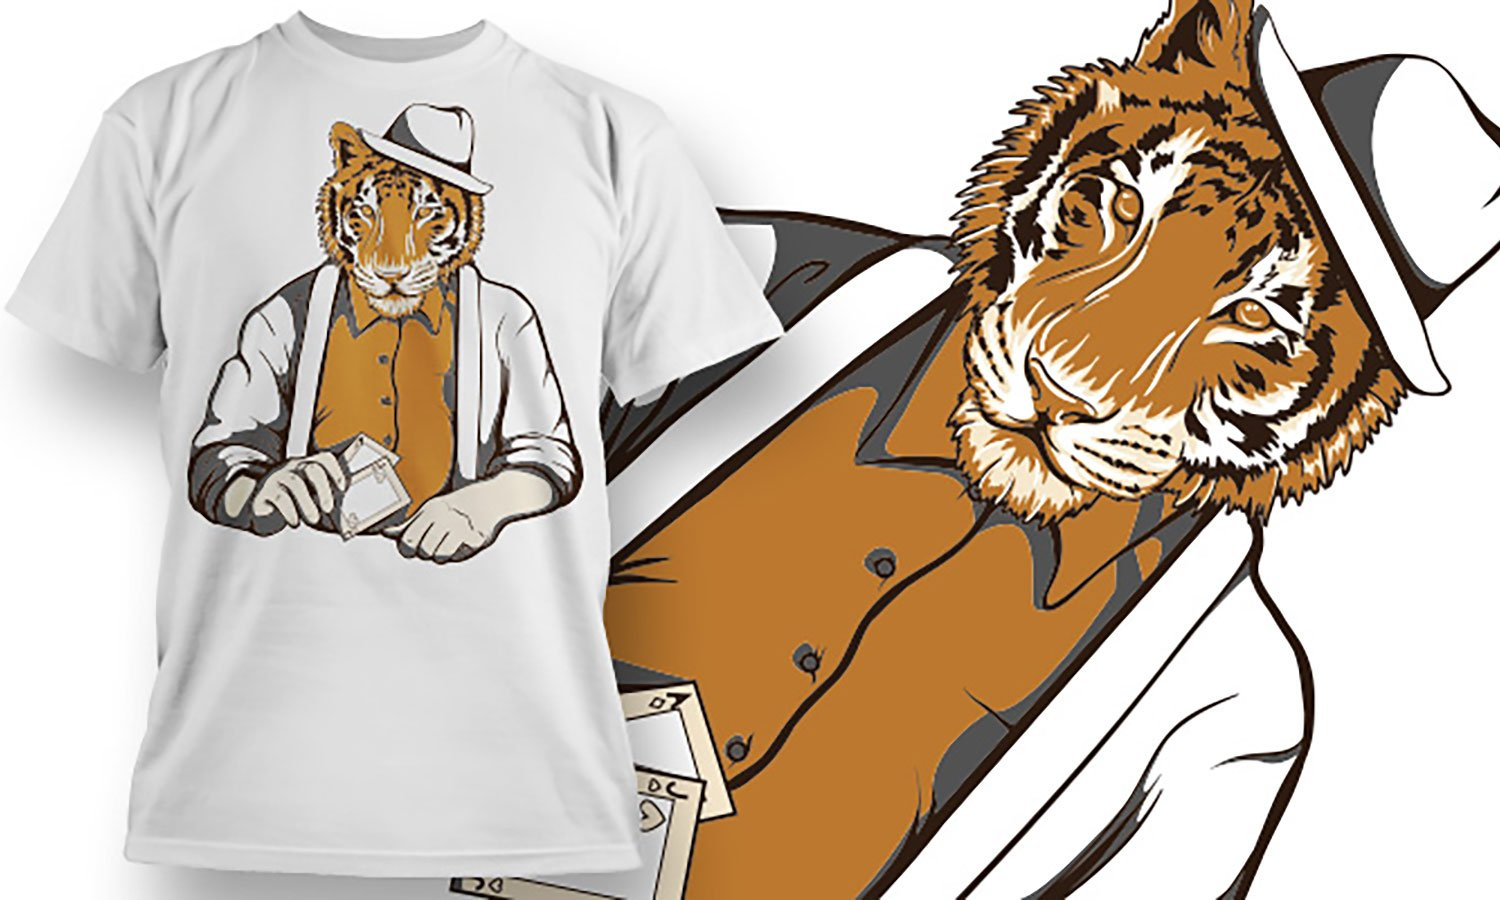 Tiger Man - Printed T-Shirt for Men, Women and Kids - TS395